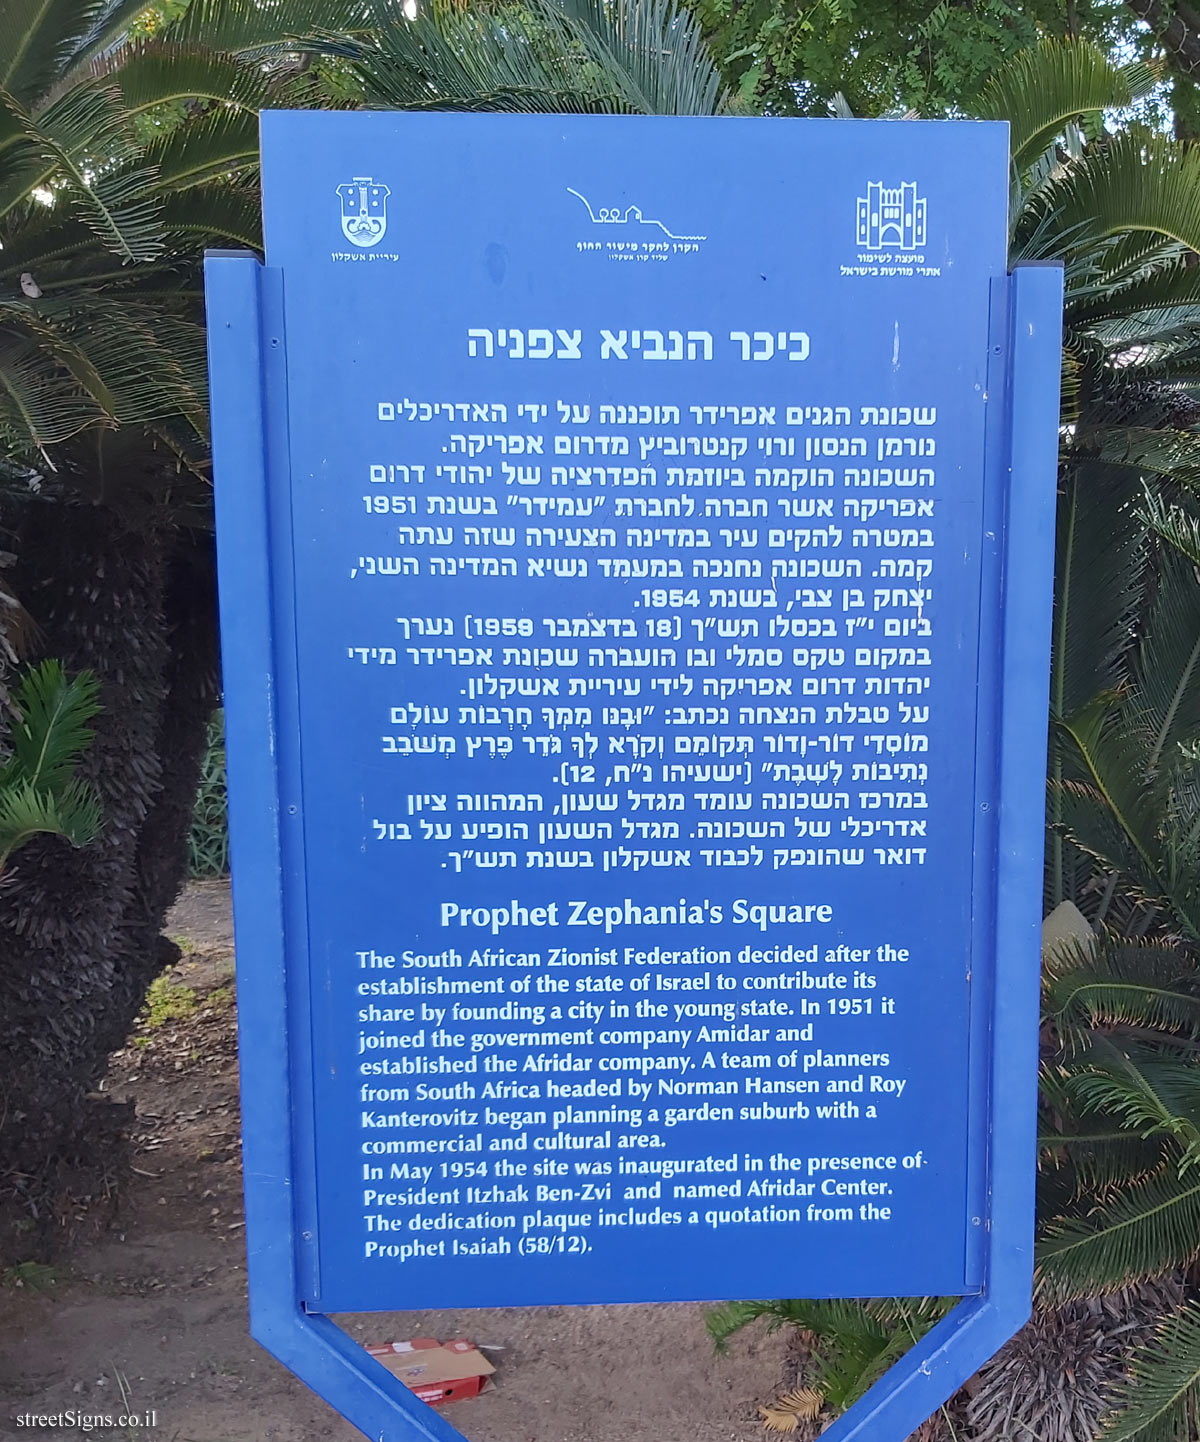 Ashkelon - Heritage Sites in Israel - Prophet Zephania's Square